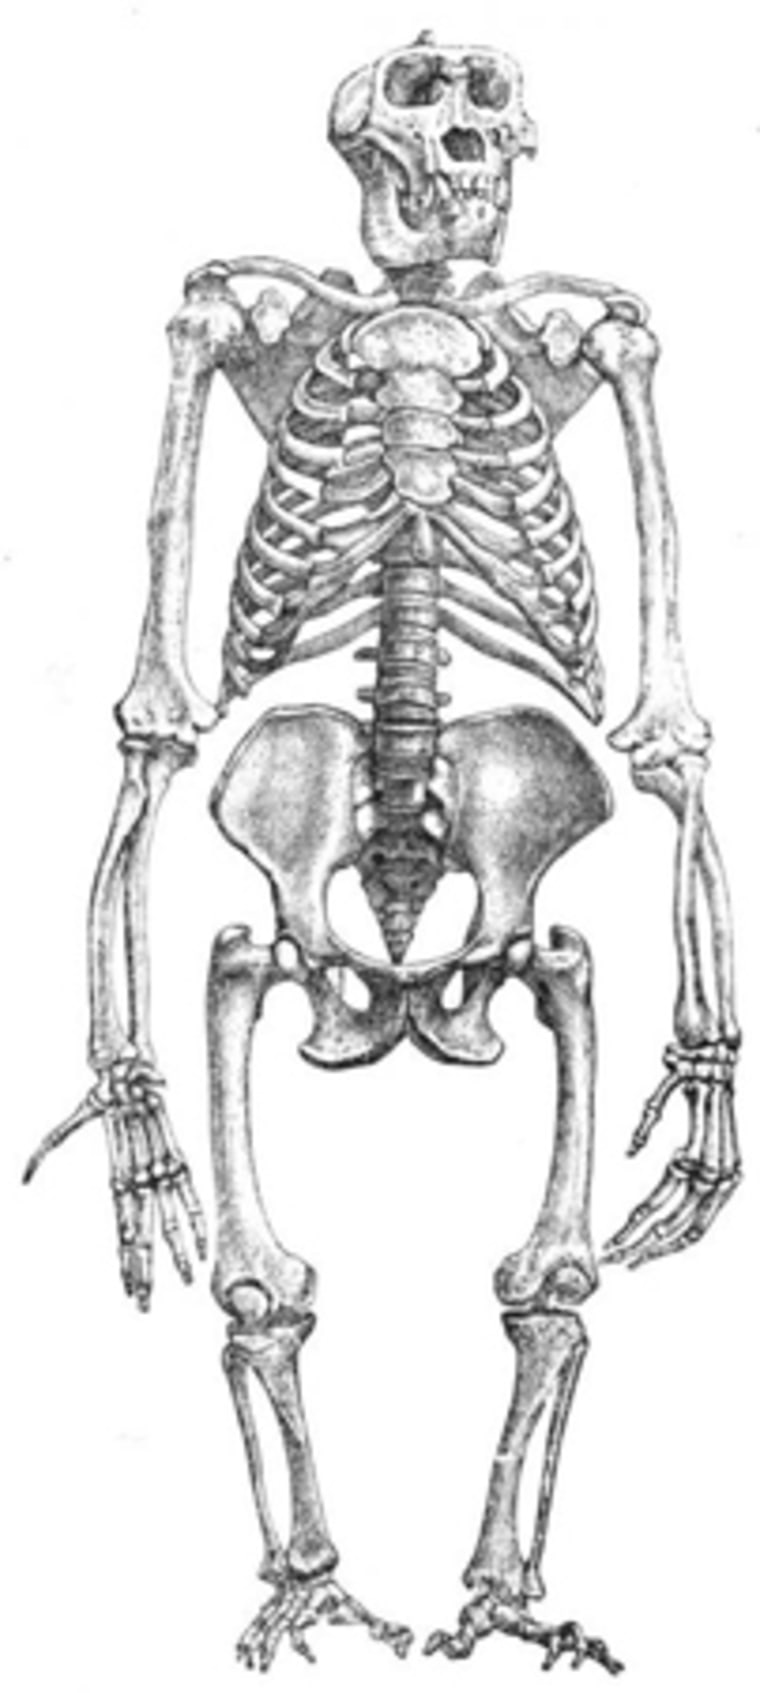 A male gorilla has very short legs relative to body size, a trait that could be an adaptation for stability and strength in male-male combat.